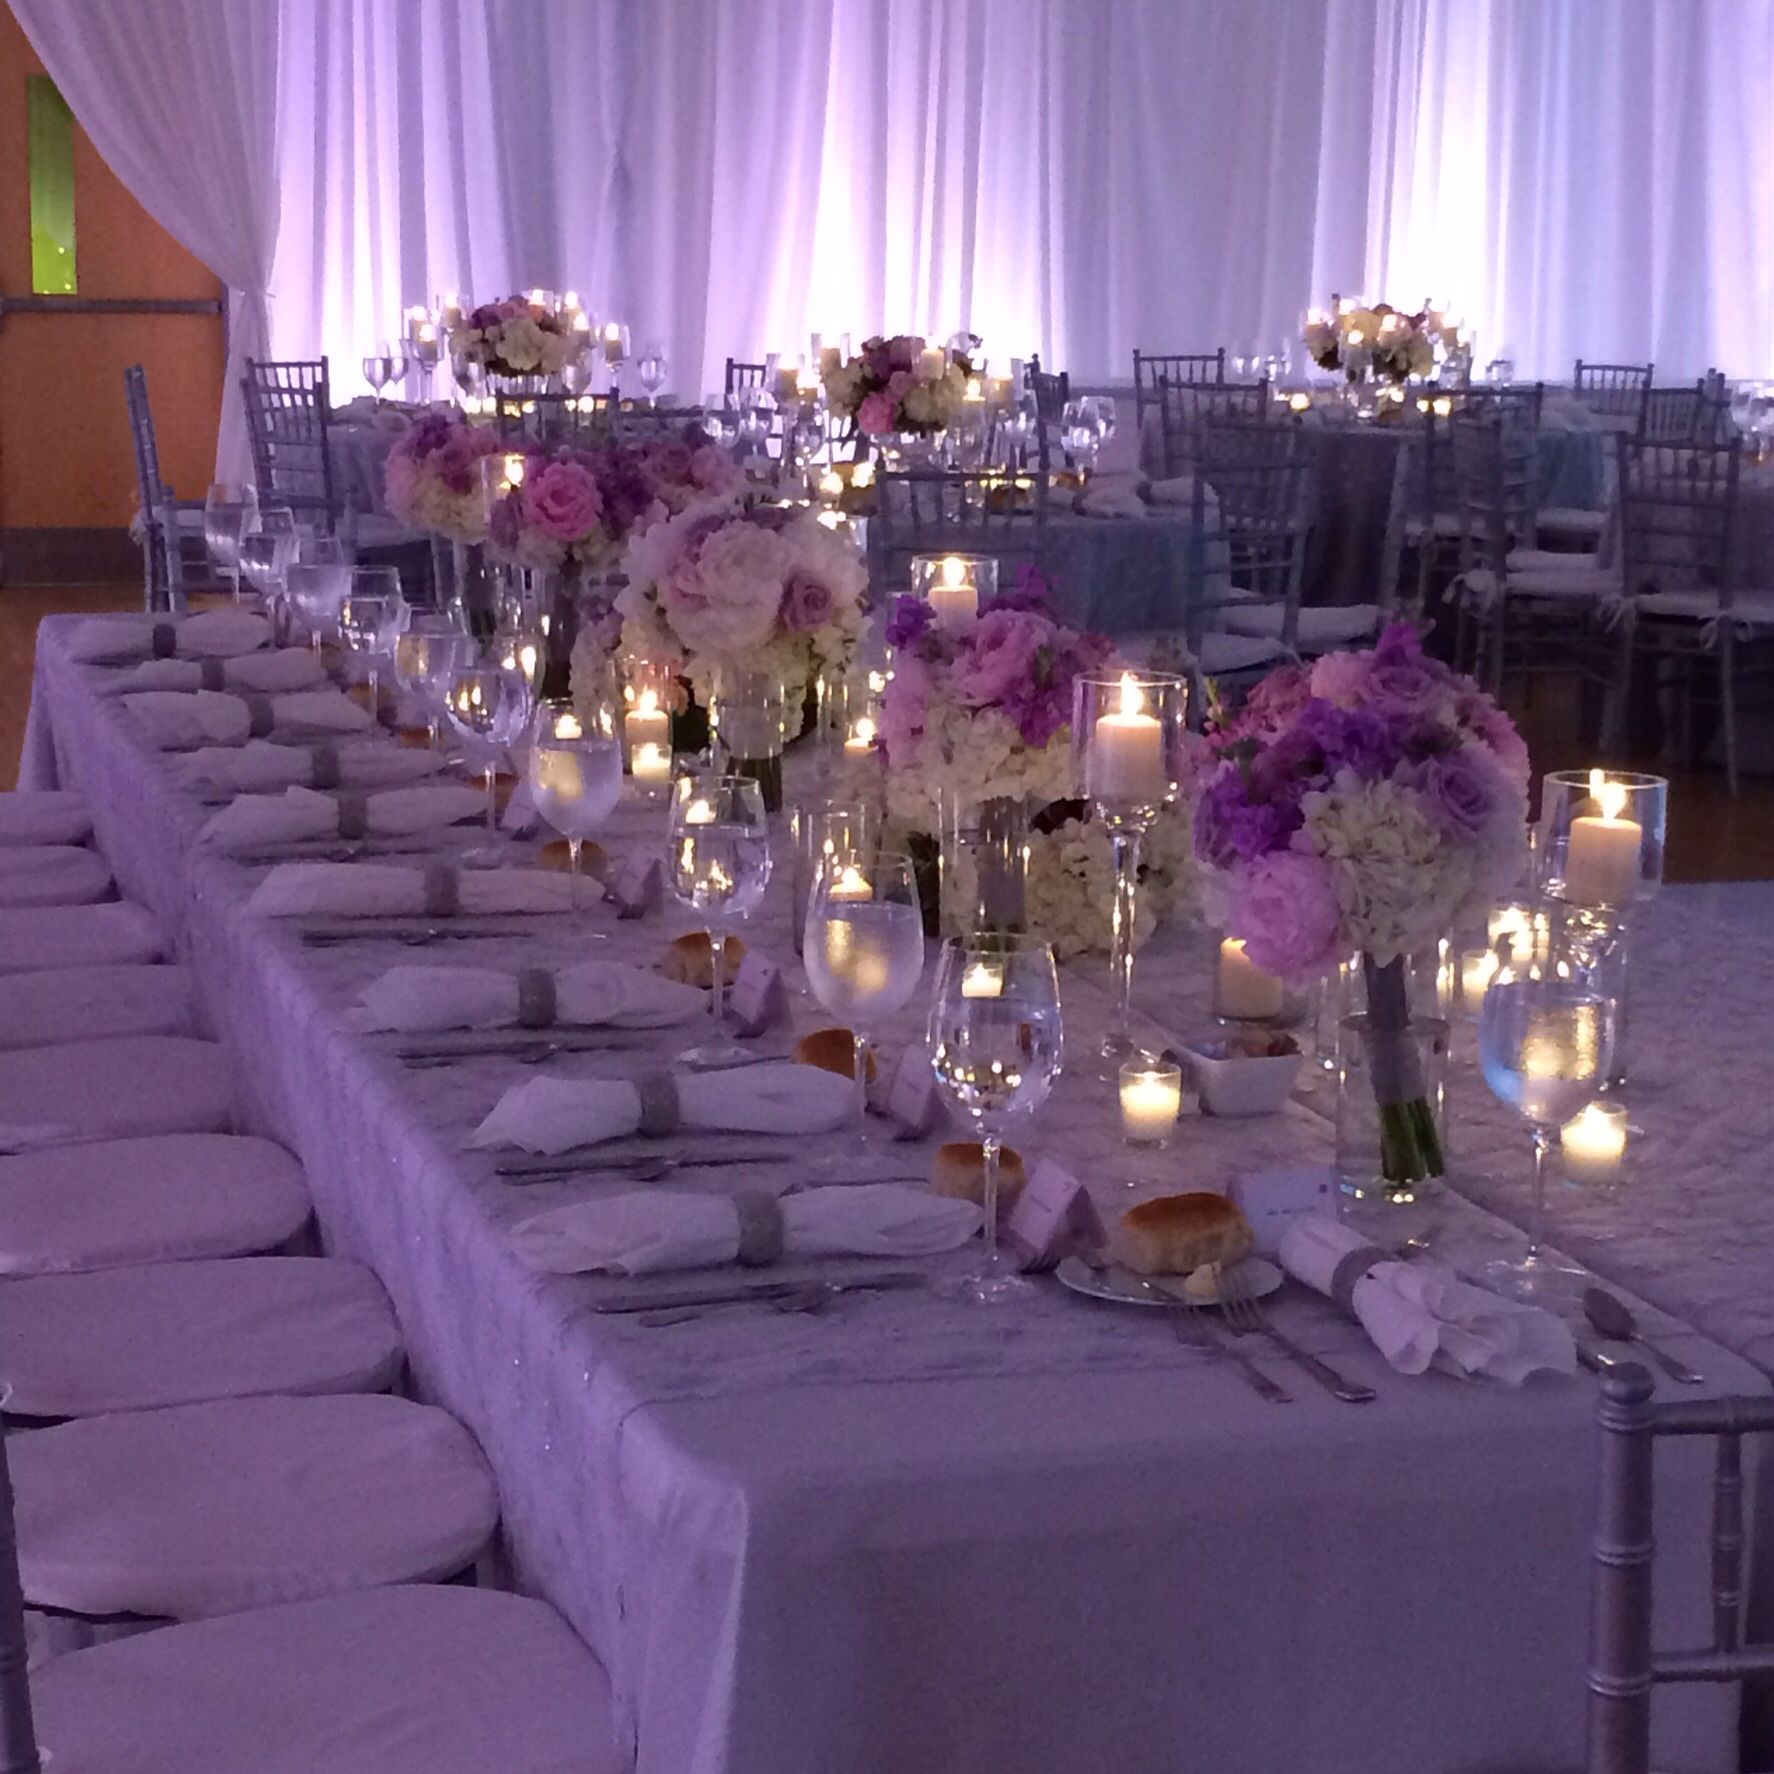 Pale Pinks And Purples In The Special Events Hall #Phipps